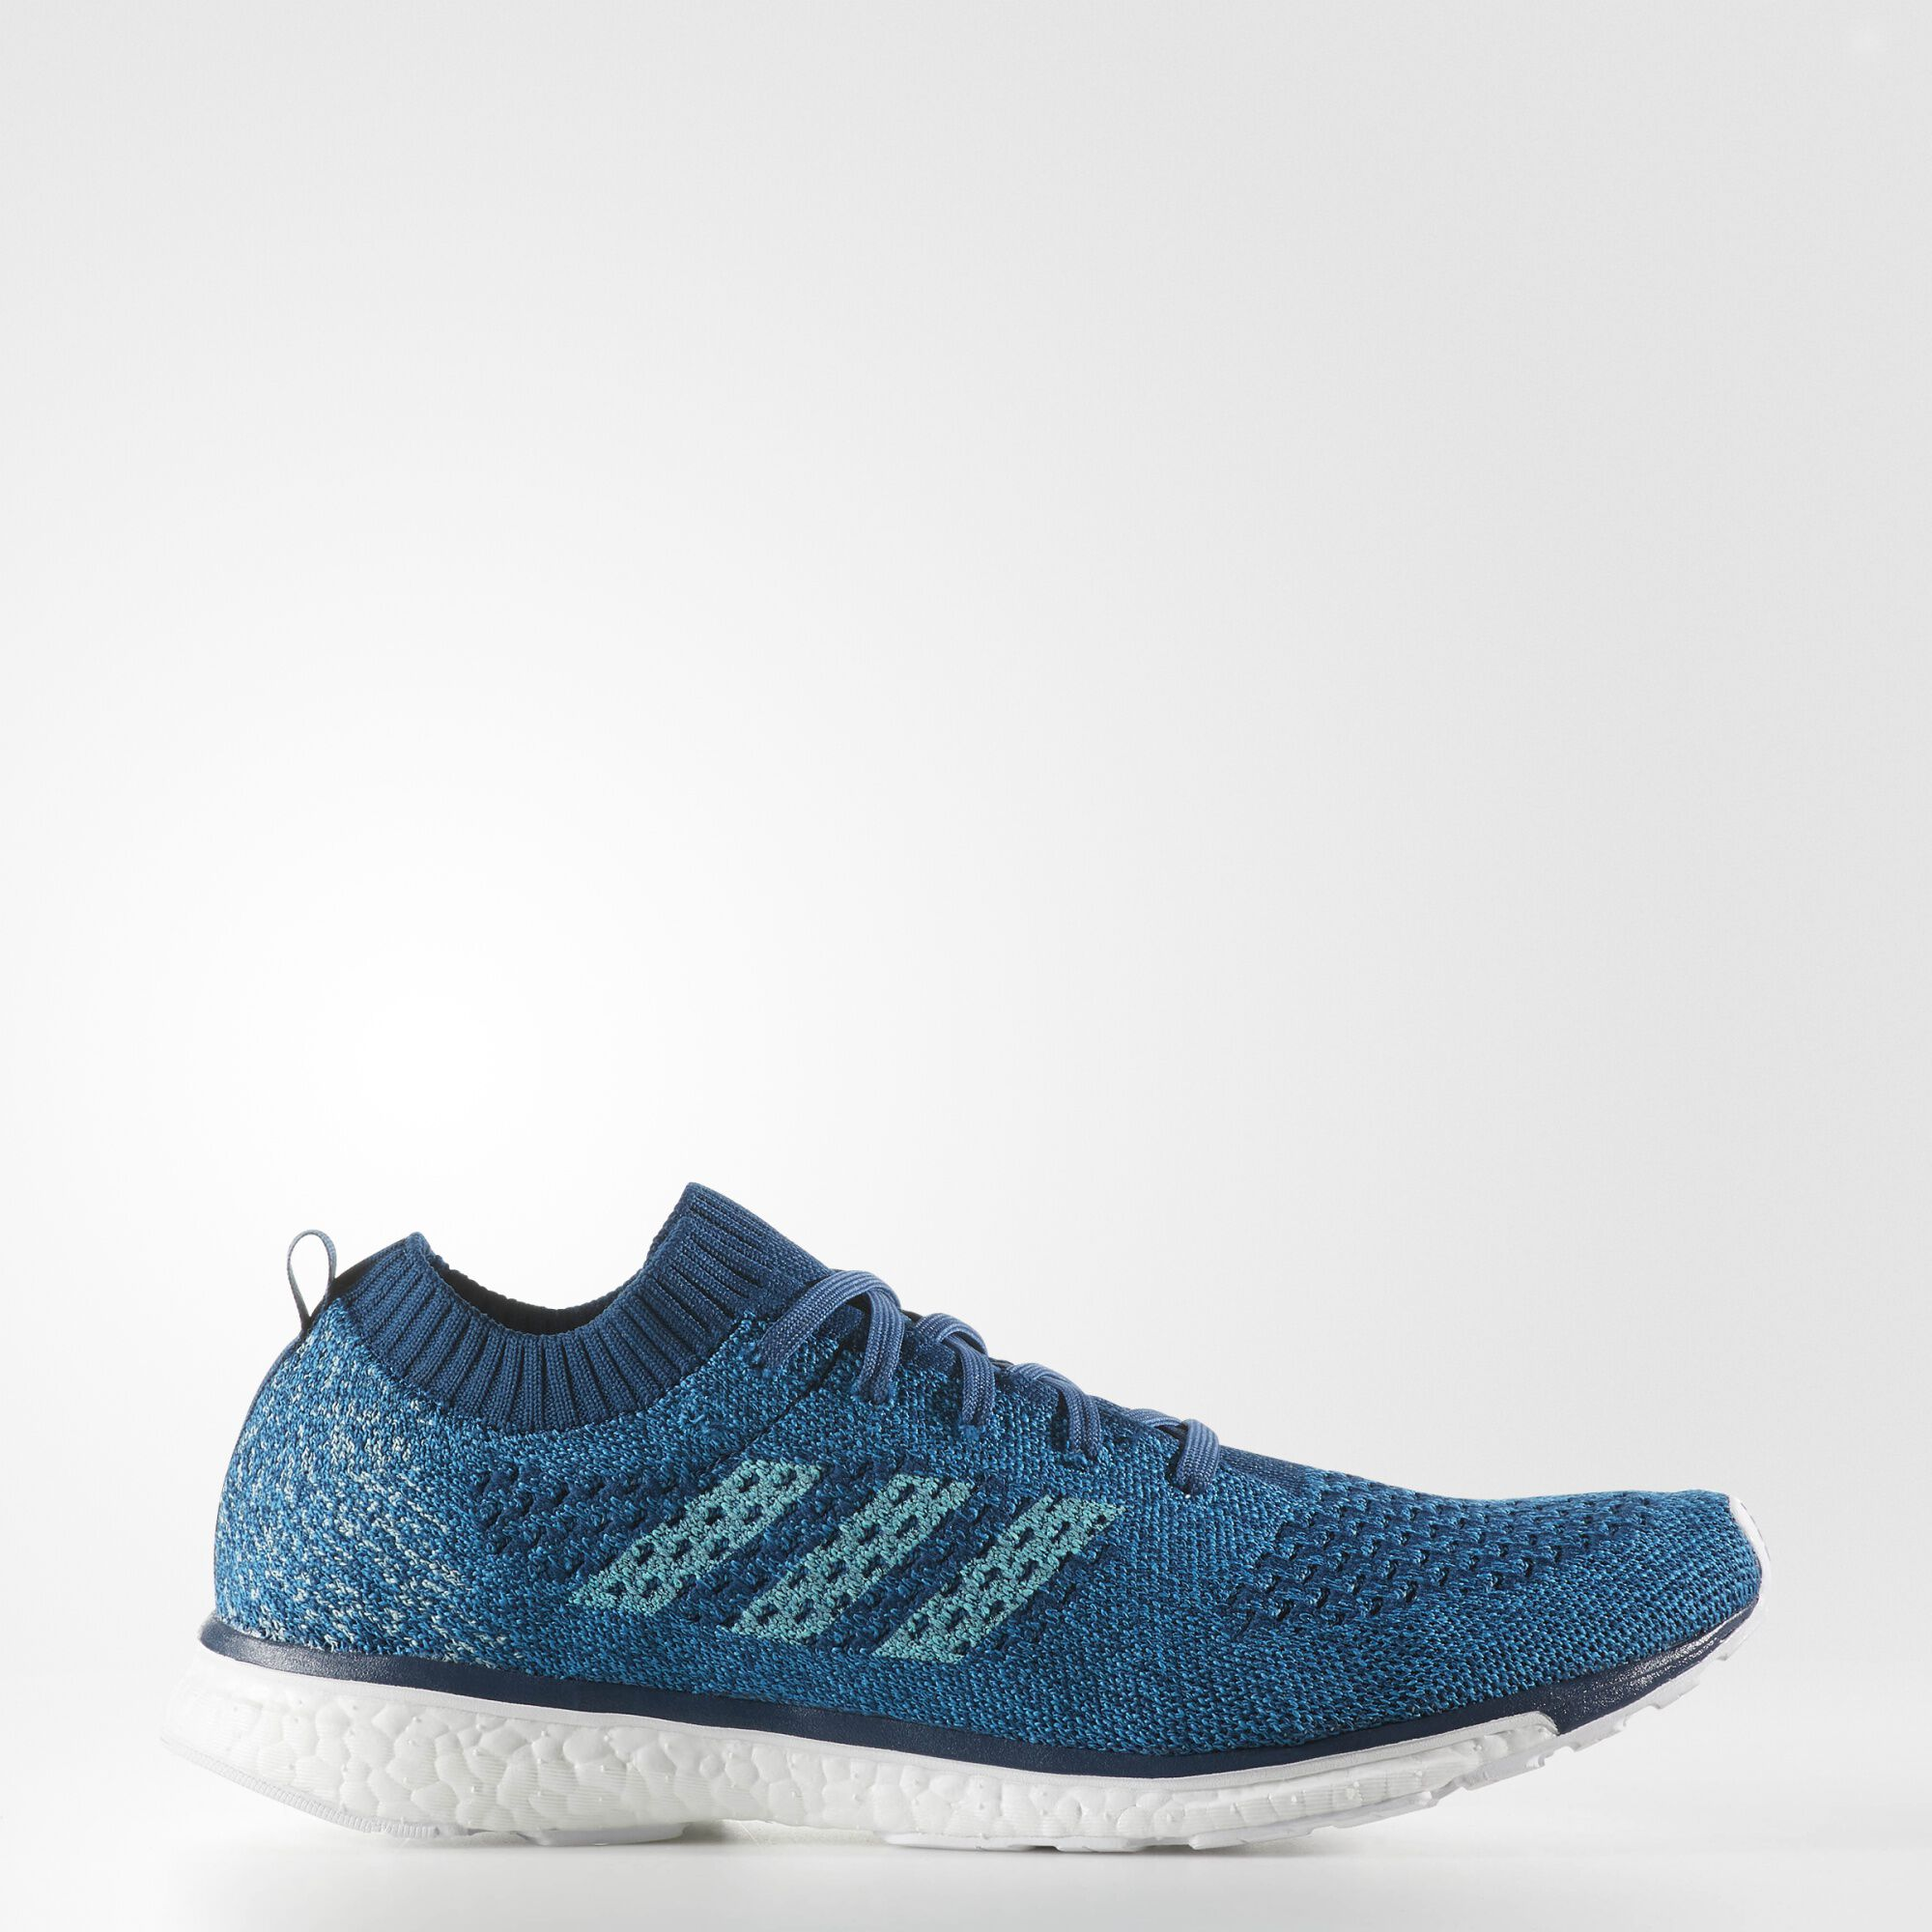 adidas questar boost homme test